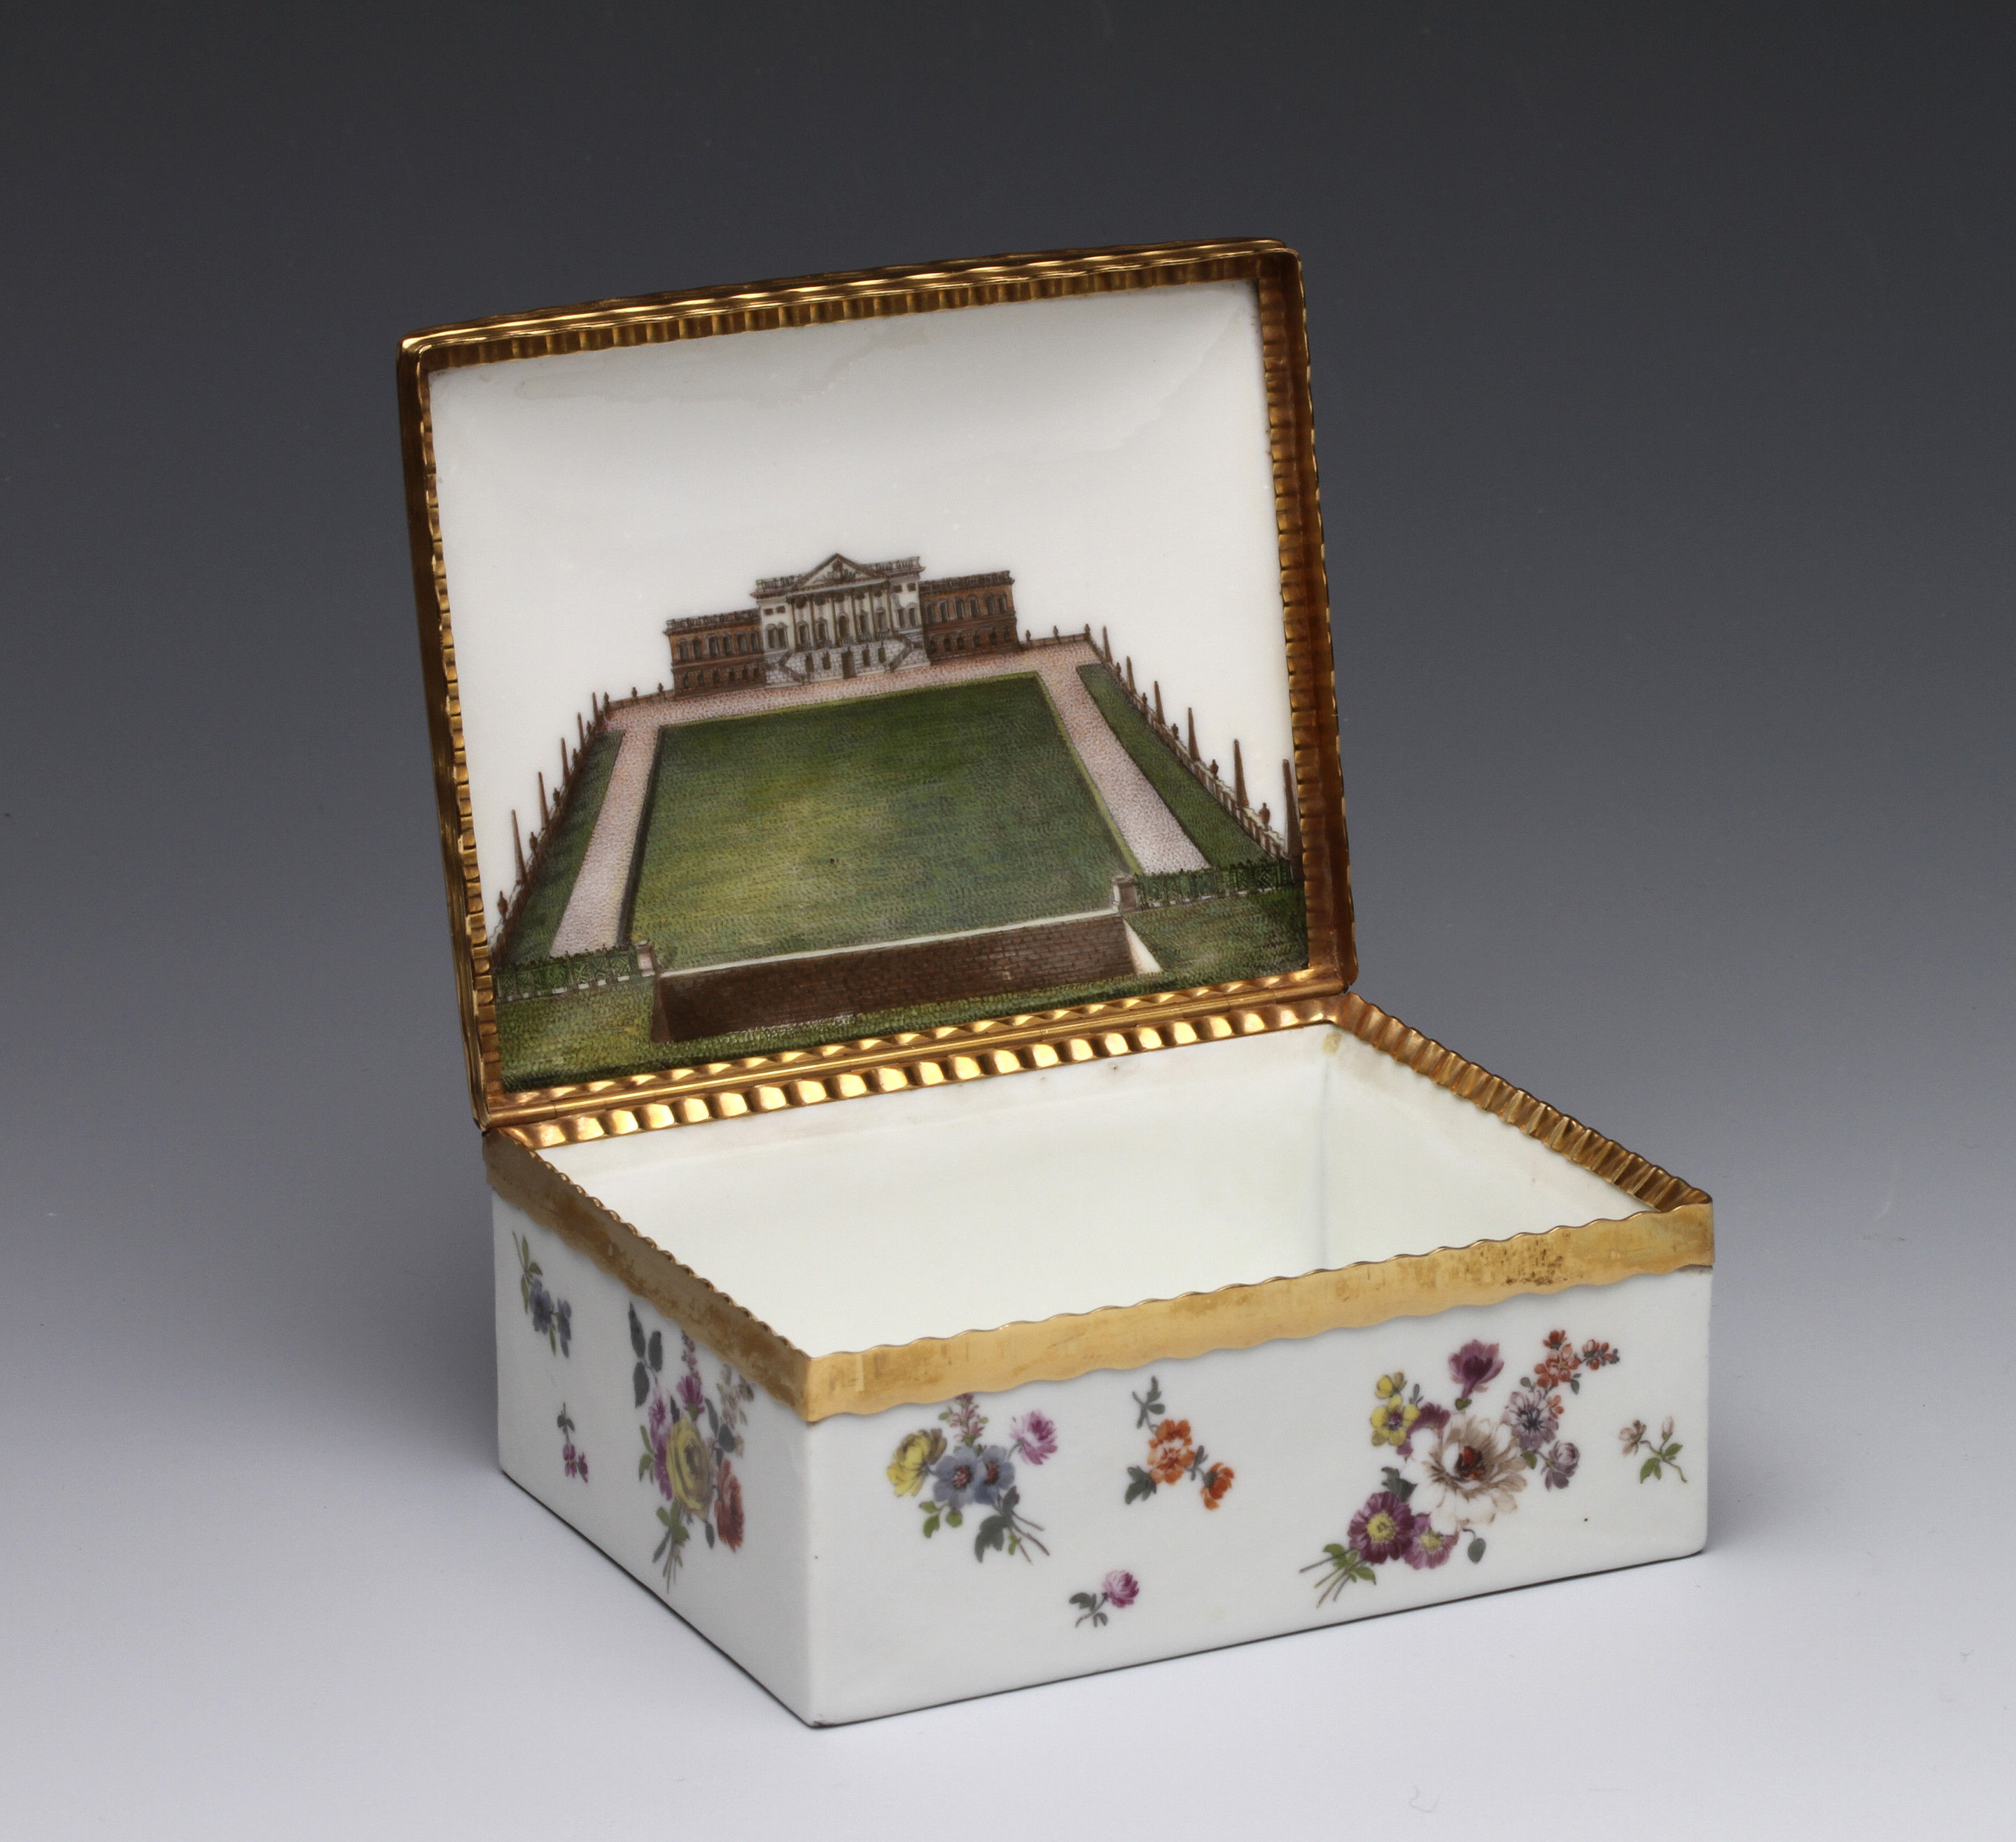 A Meissen gold-mounted table snuff box painted with a view of Wanstead House